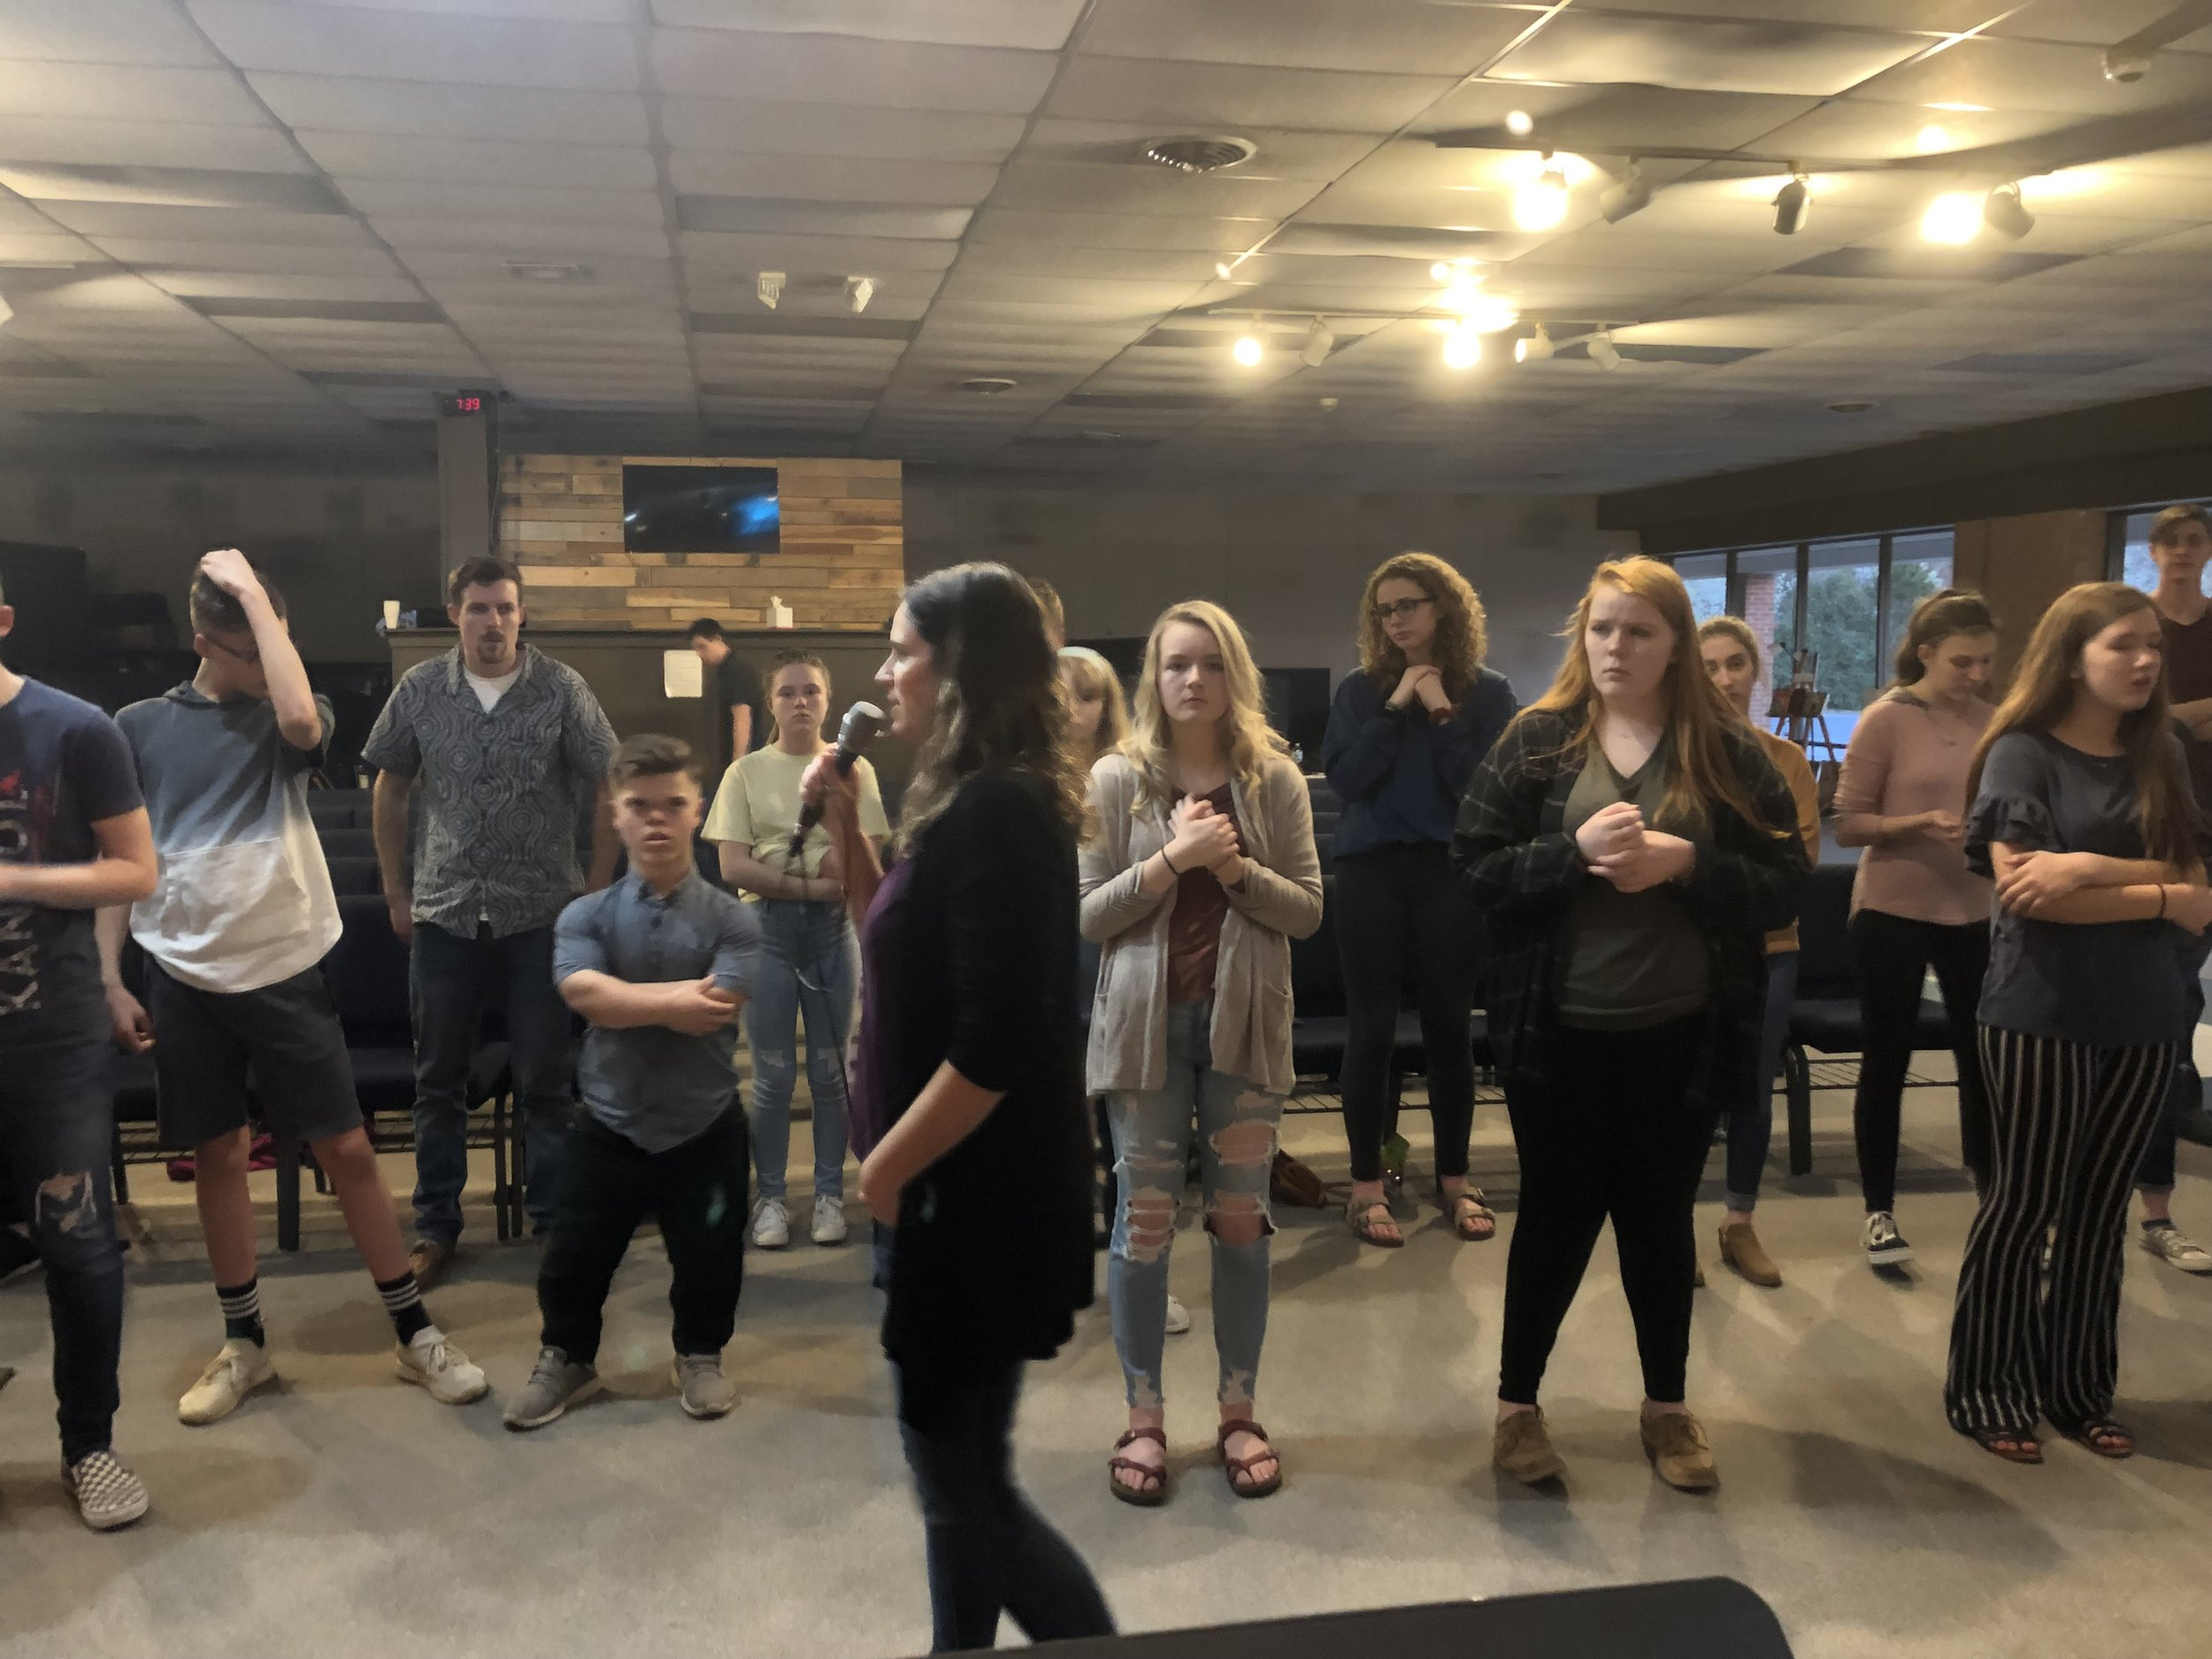 Learn more about a recent move of God in a youth group in Fredericksburg, Virginia in April 2019.